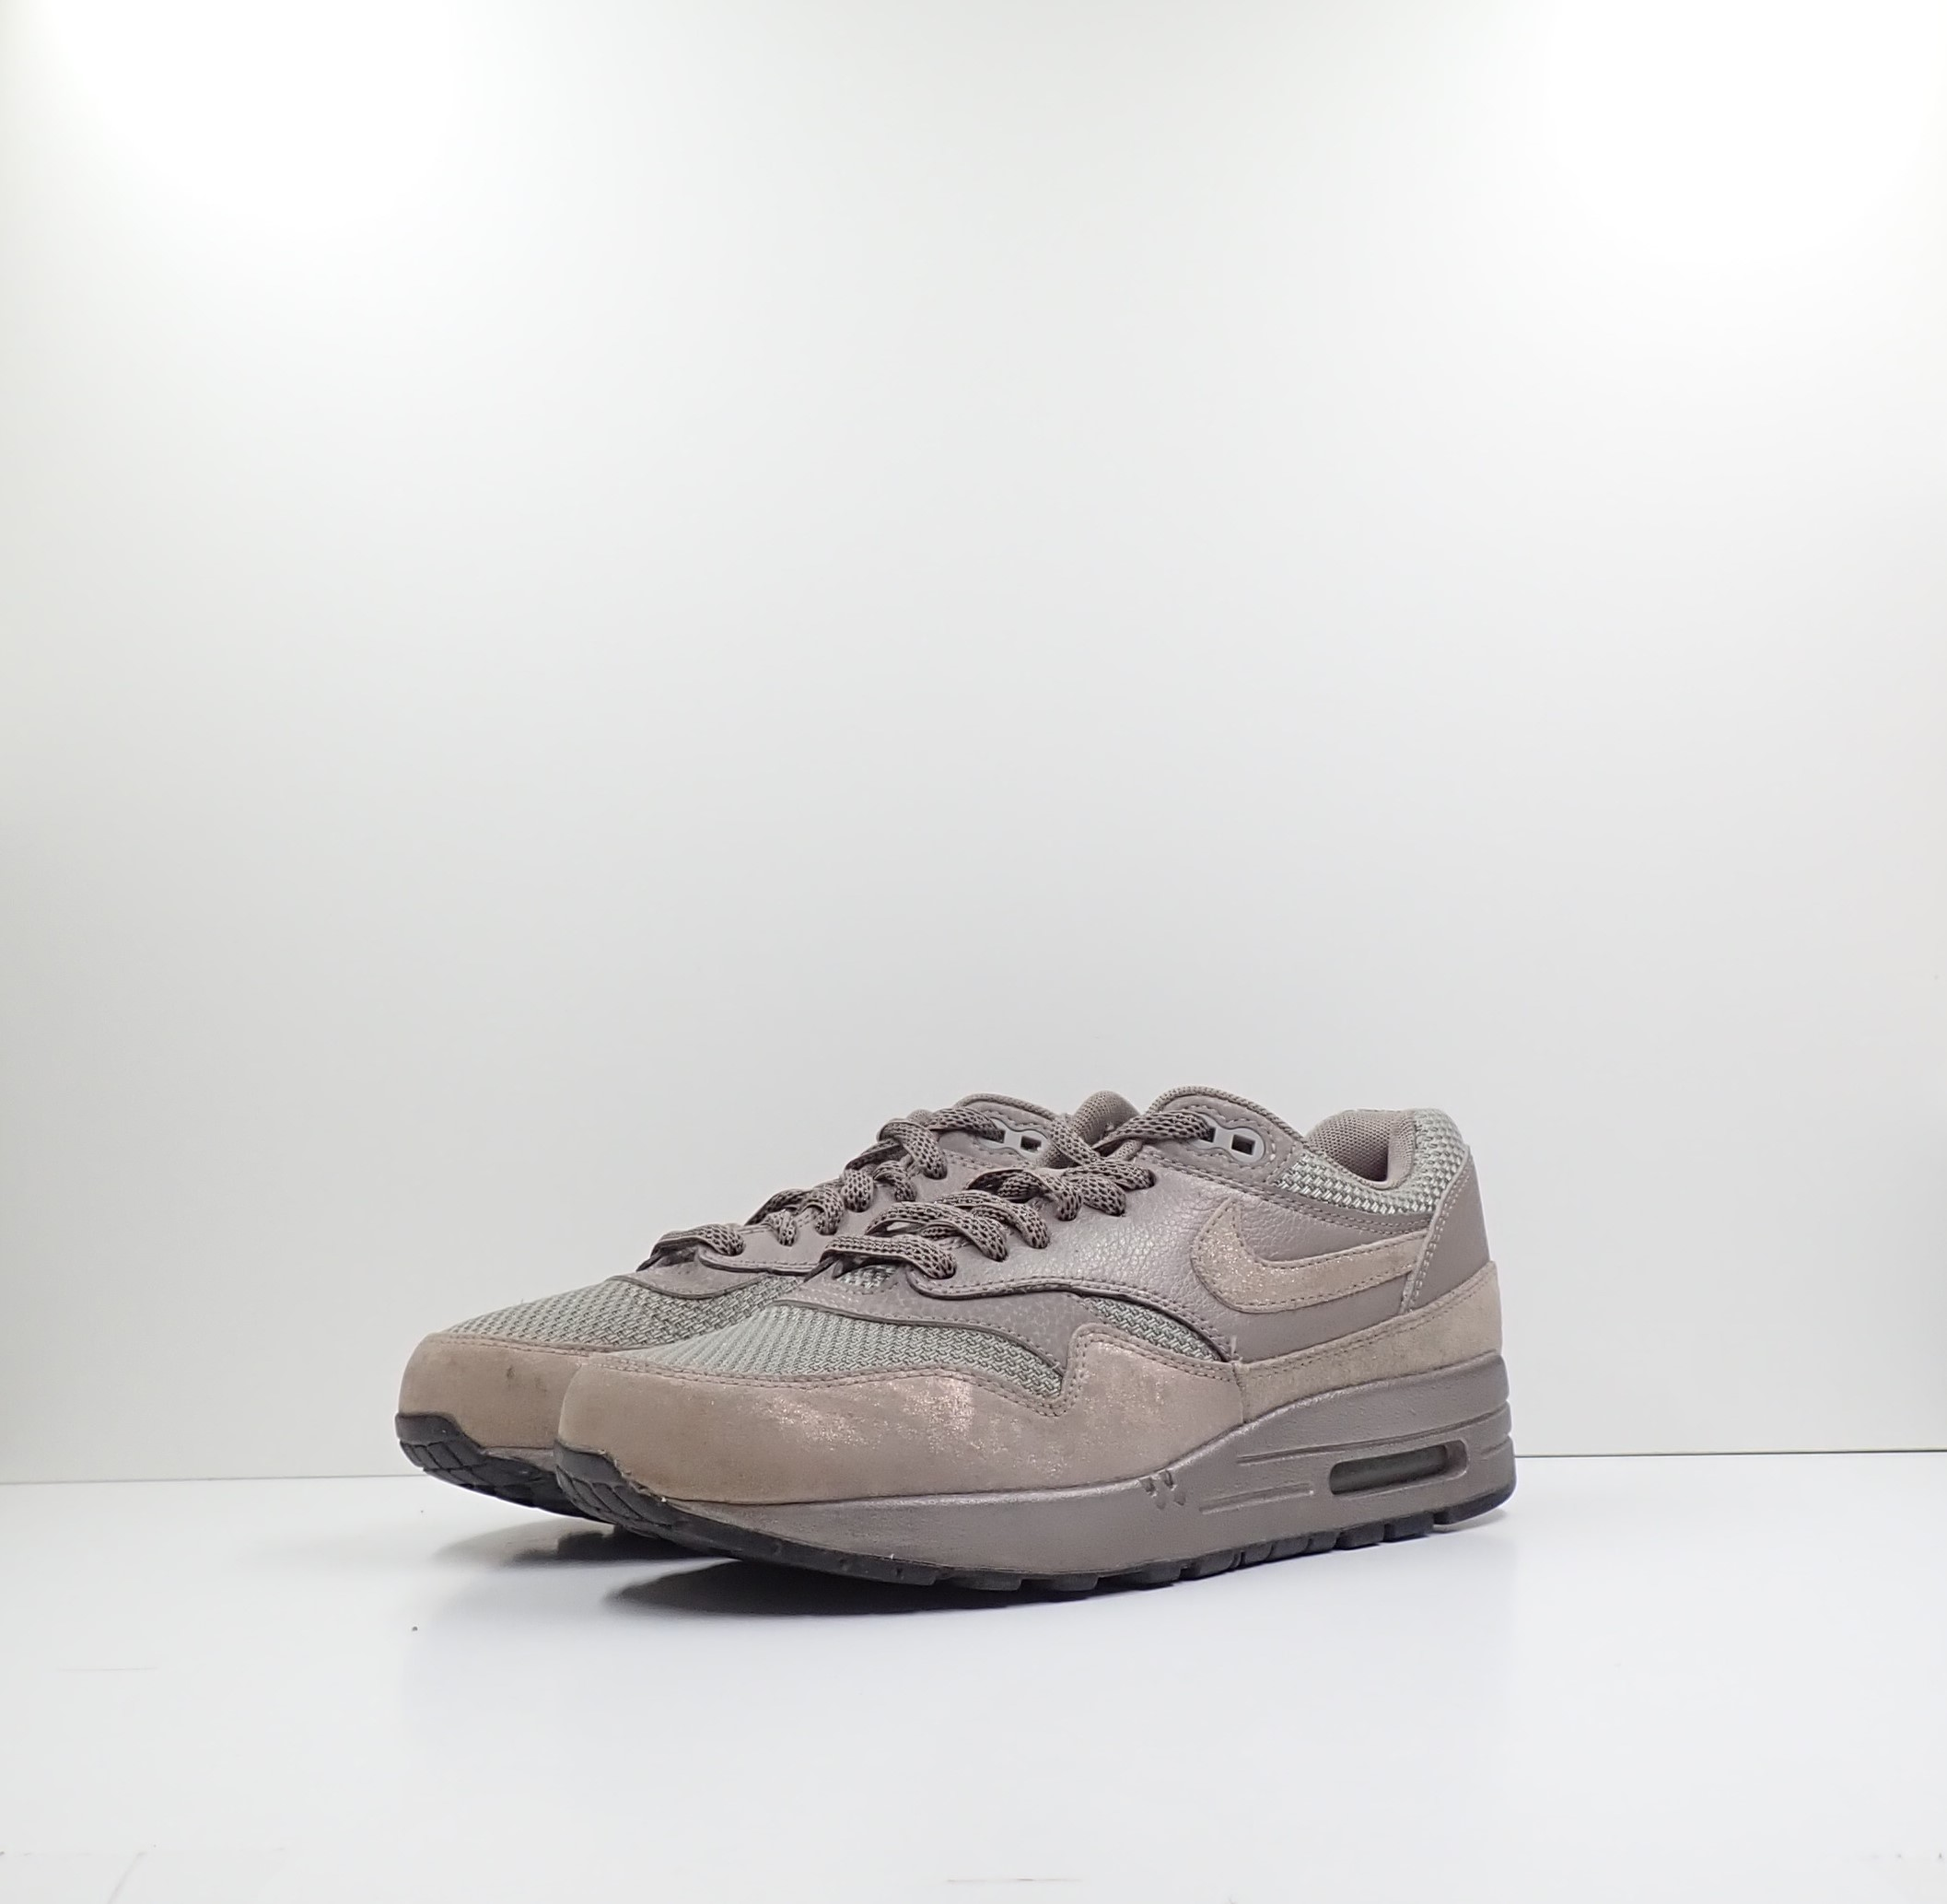 Nike Wmns Air Max 1 Premium Iron Metallic